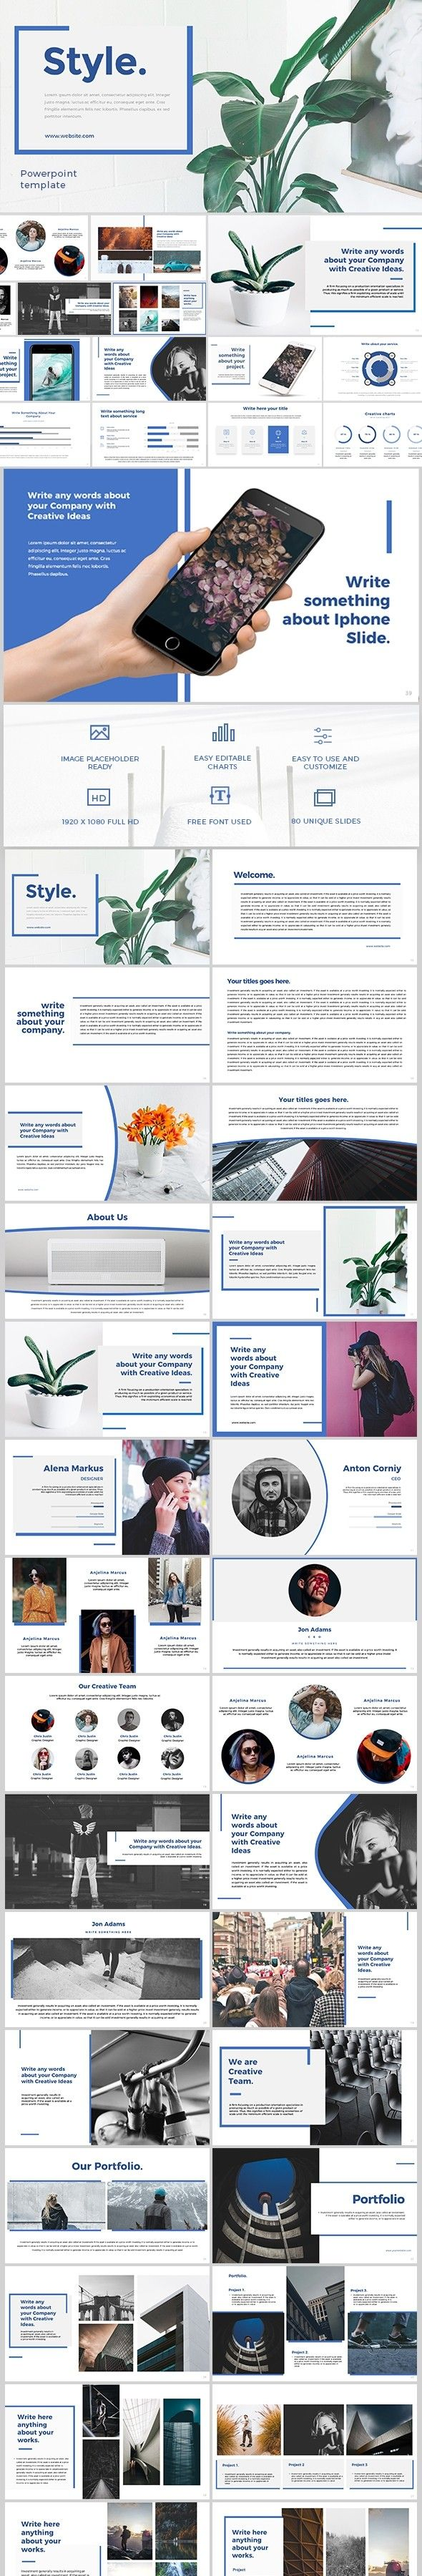 Business Business Powerpoint Clean Company Corporate Creative